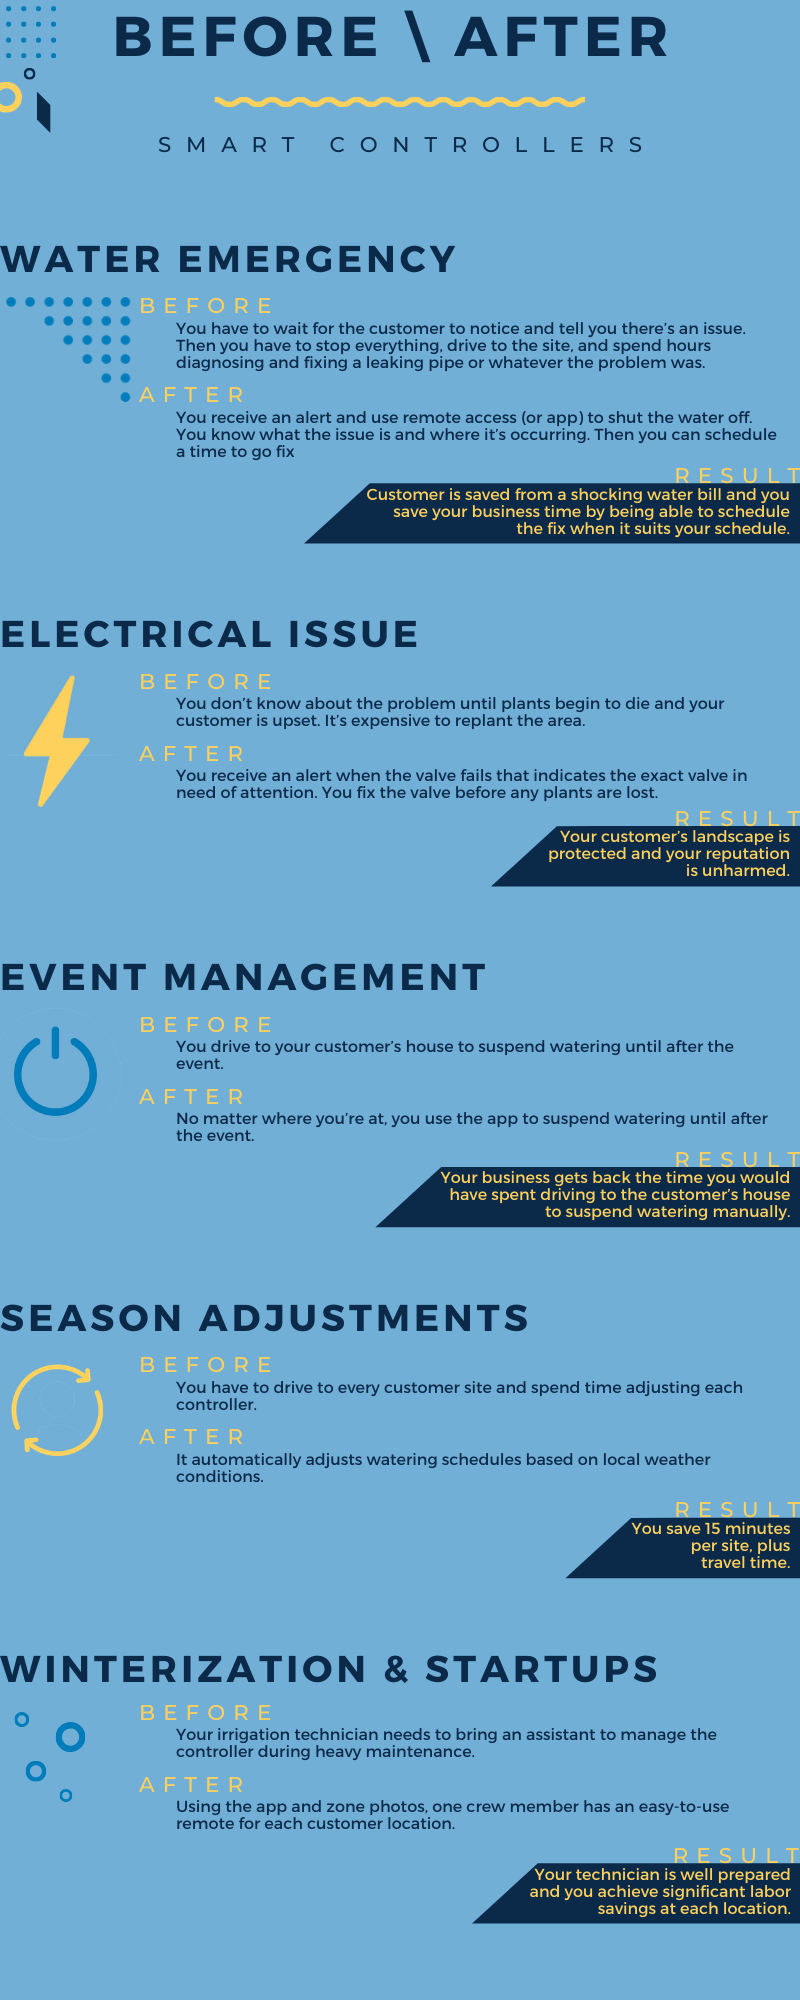 Infographic detailing the benefits of irrigation smart controllers.